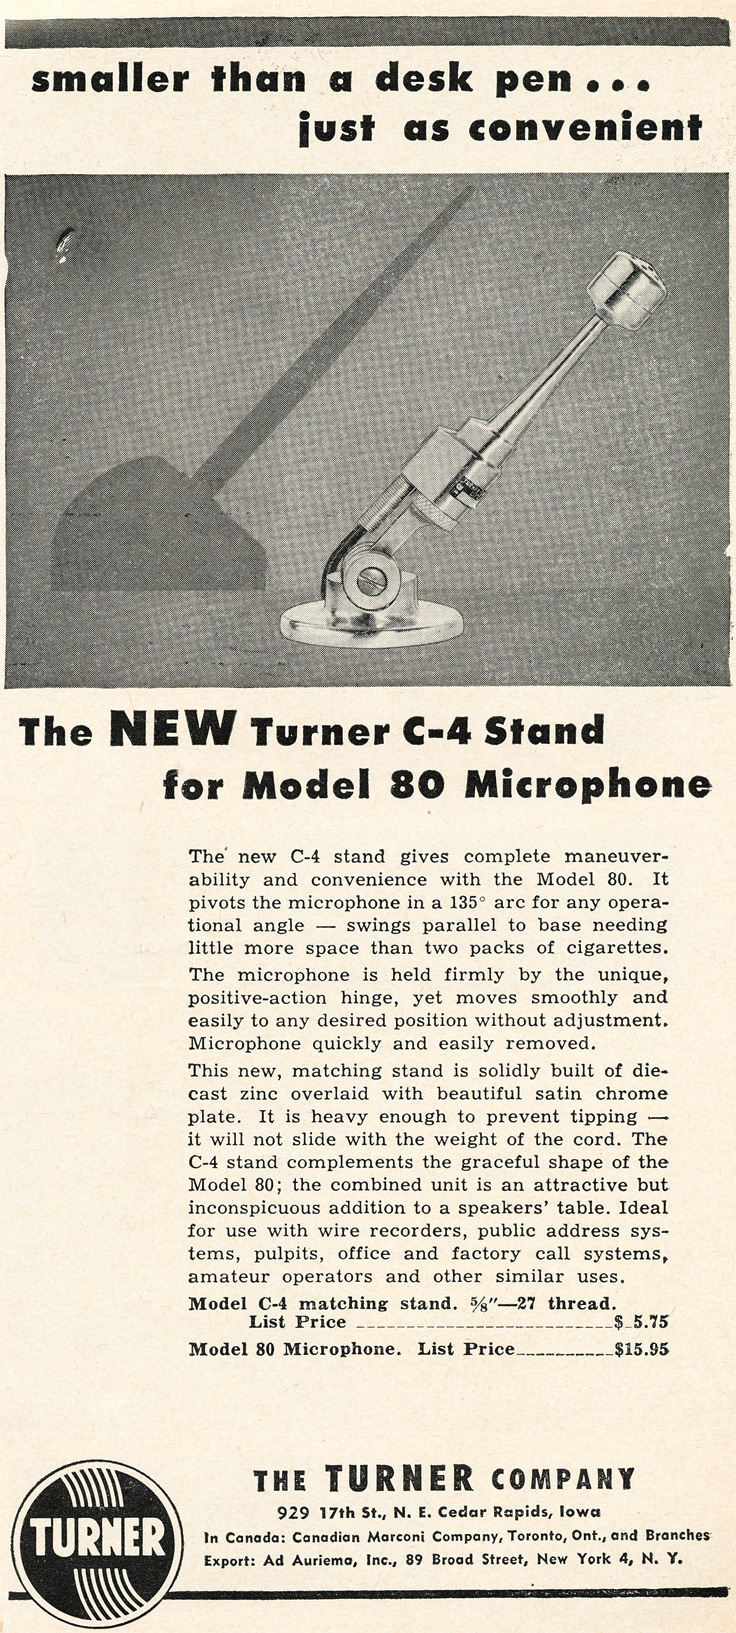 1953 Turner C-4 microphone ad in Reel2ReelTexas.com's vintage recording collection